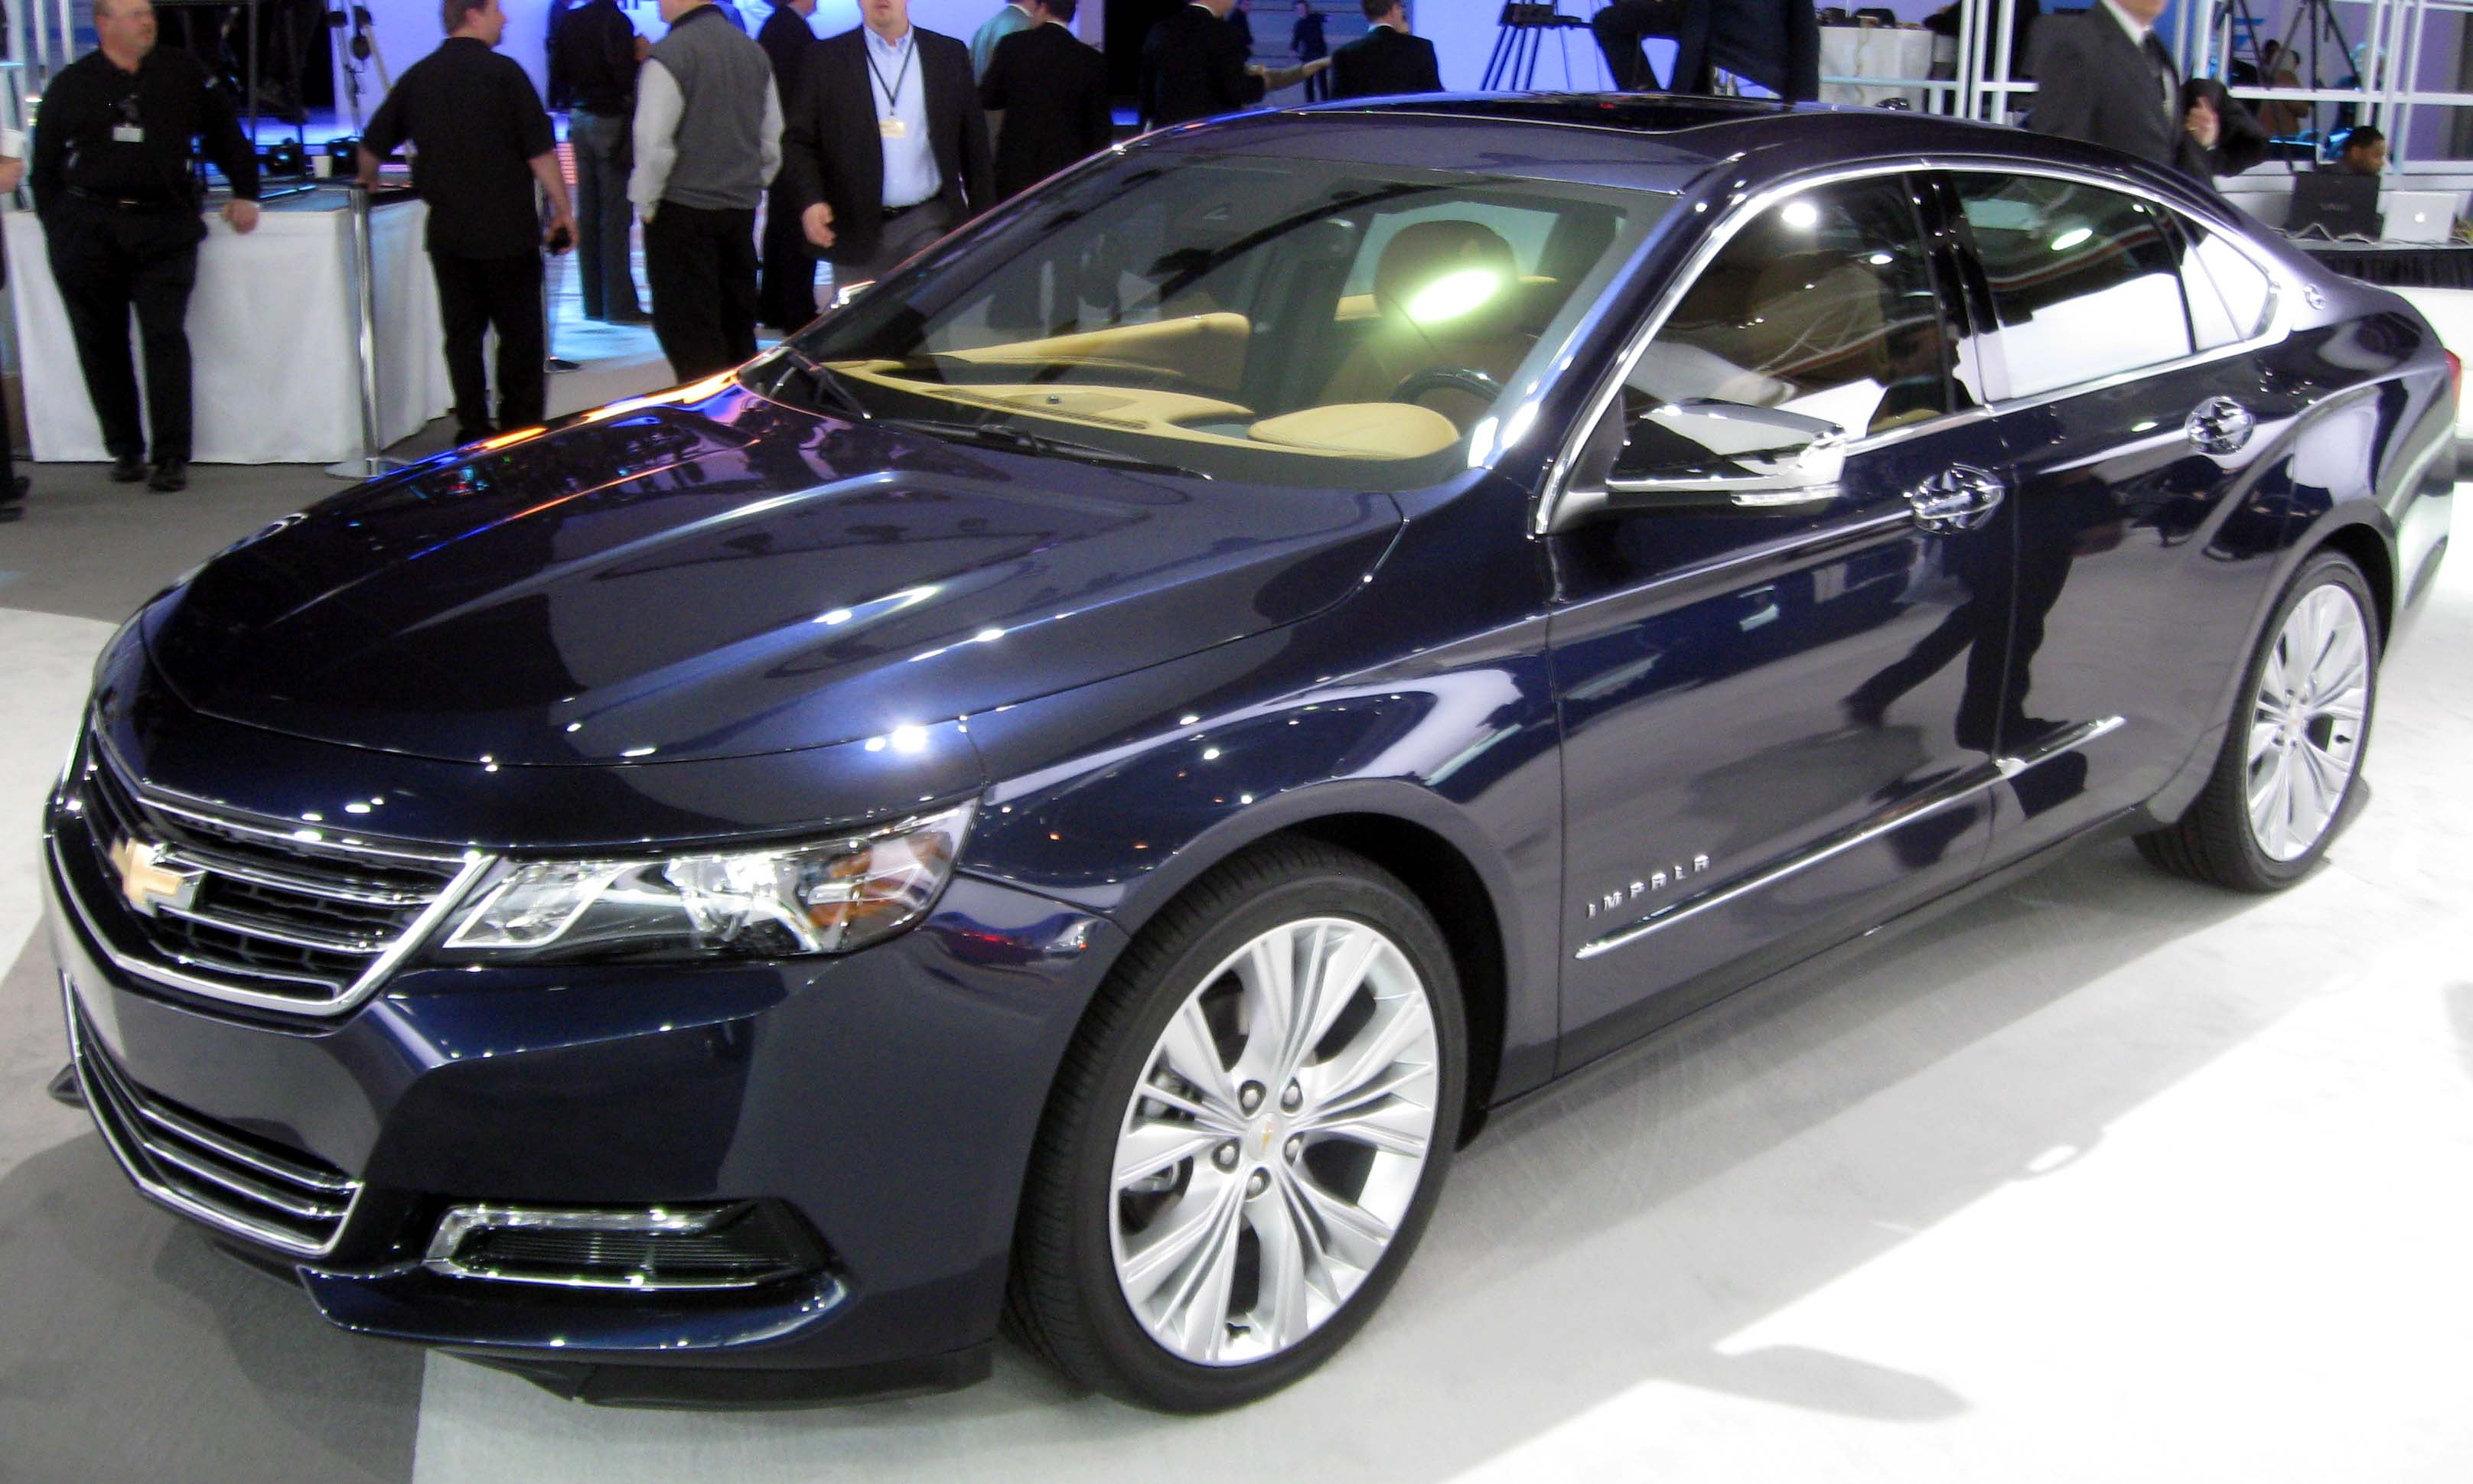 Description 2014 Chevrolet Impala LTZ -- 2012 NYIAS 1.JPG